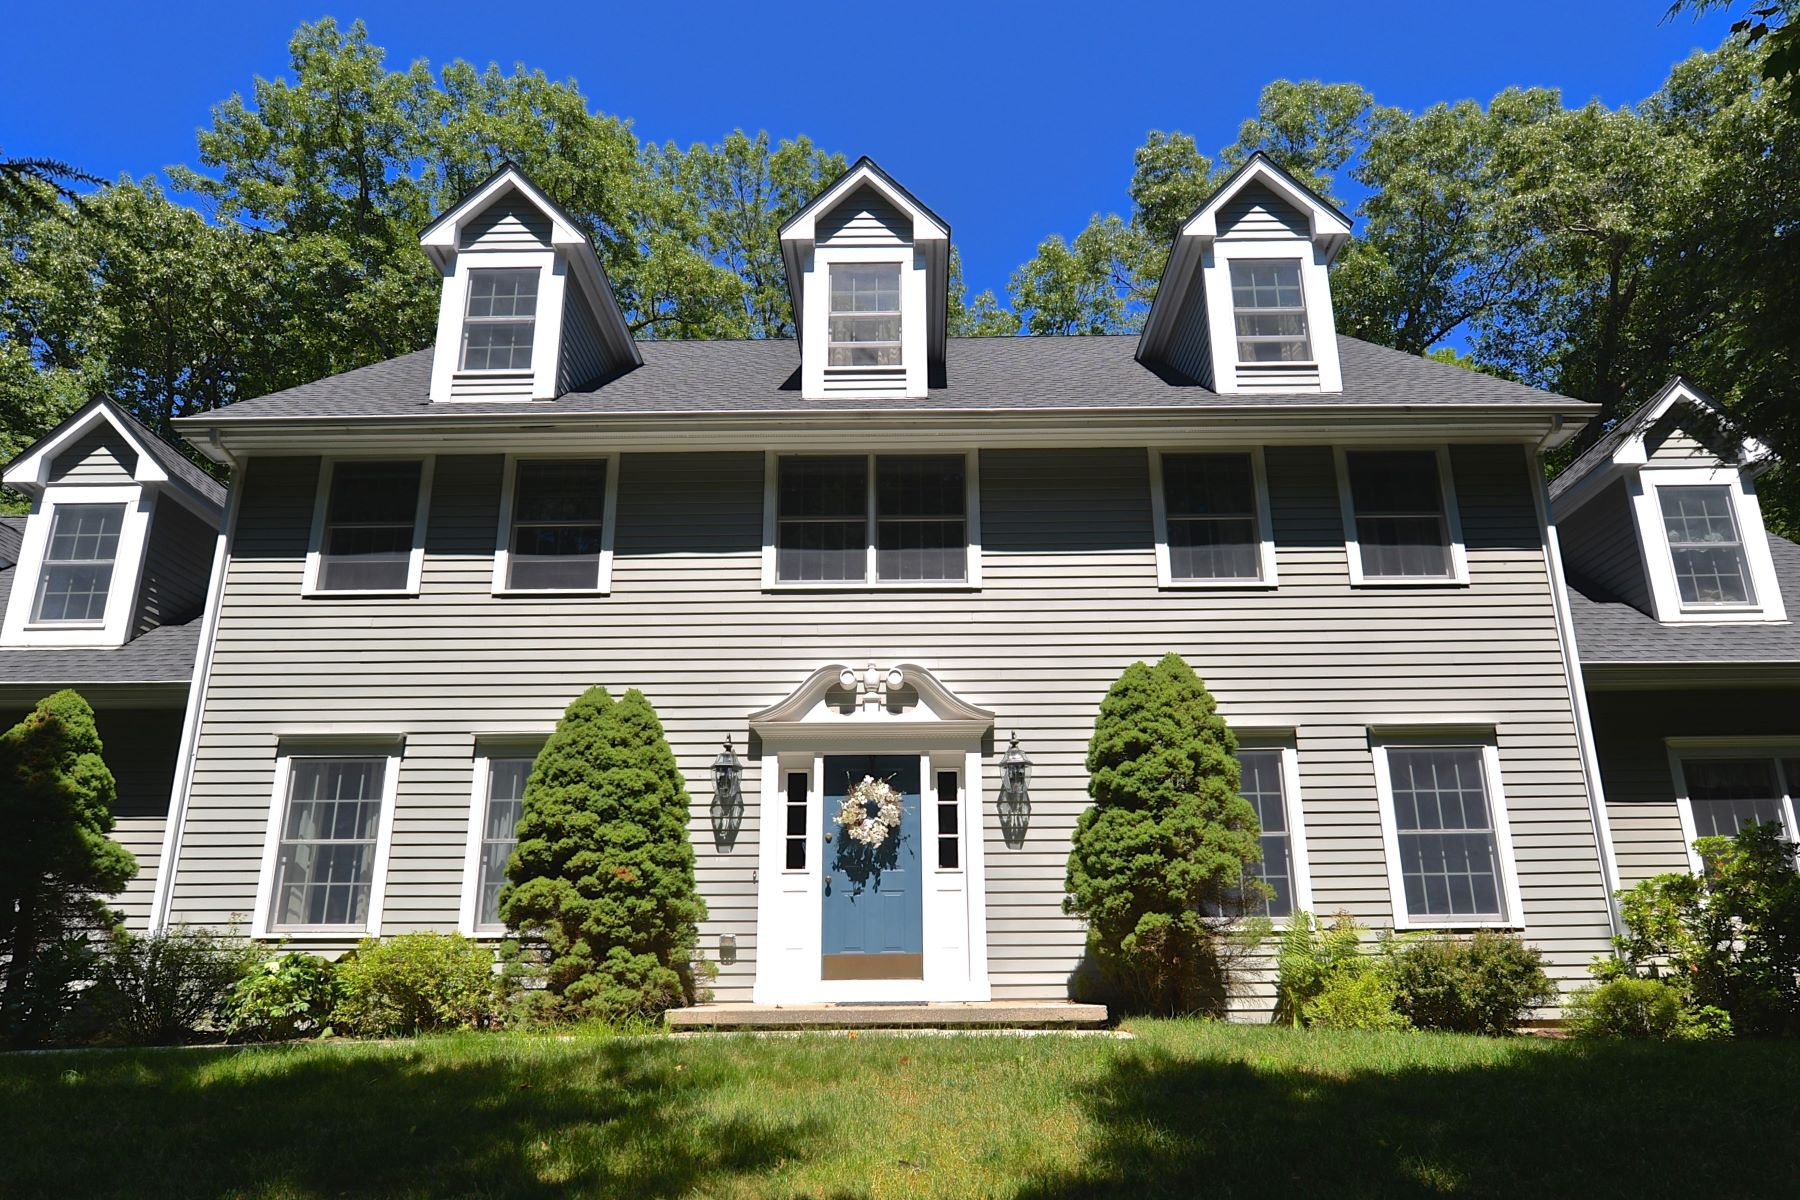 Single Family Homes for Sale at Sought After Barkwood Falls 23 Deerfield Rd, Brookfield, Connecticut 06804 United States